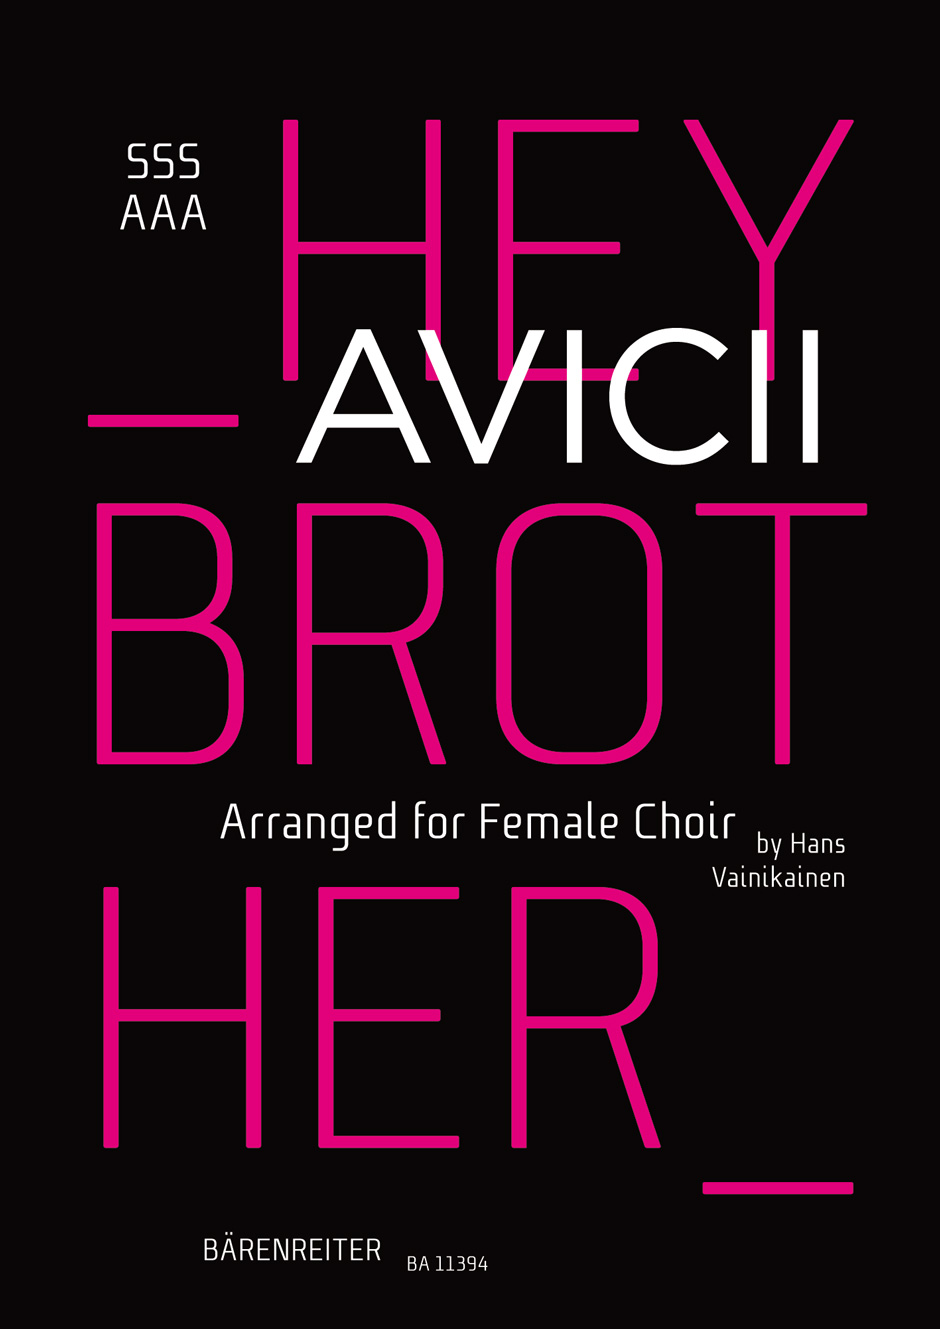 Hey Brother. Arranged for Female Choir (SSSAAA)